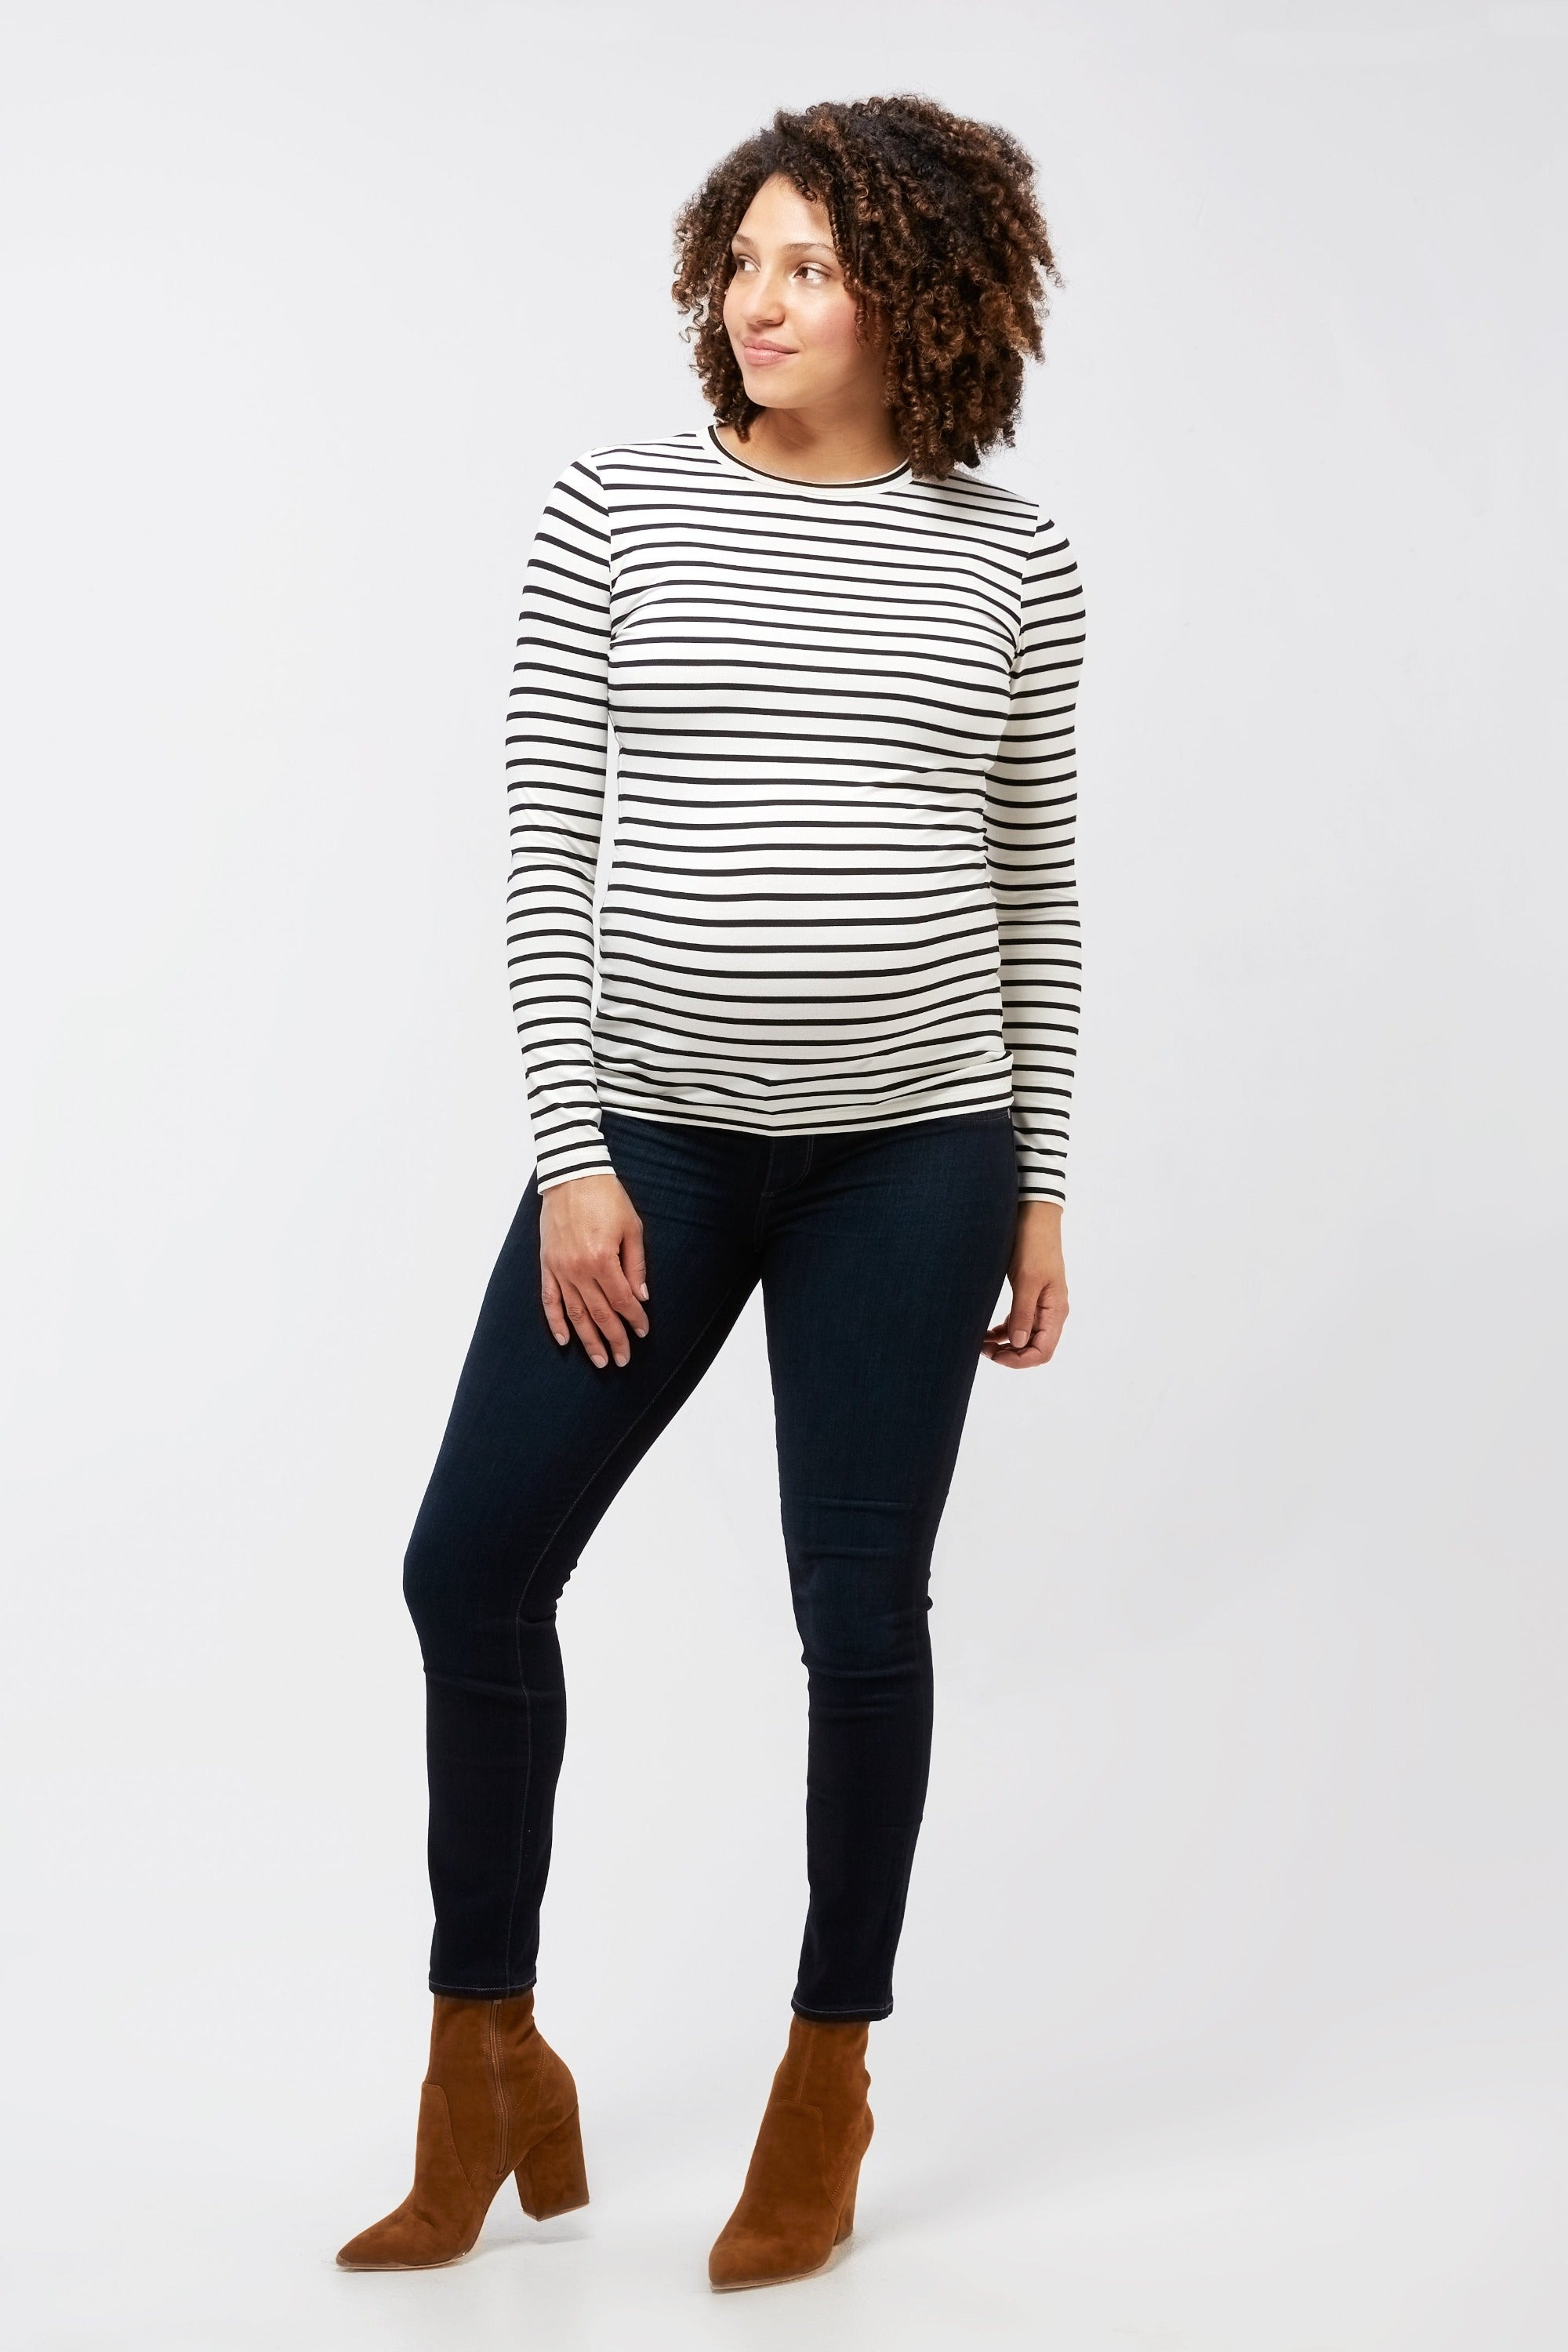 Liv long sleeve black and white stripe tee